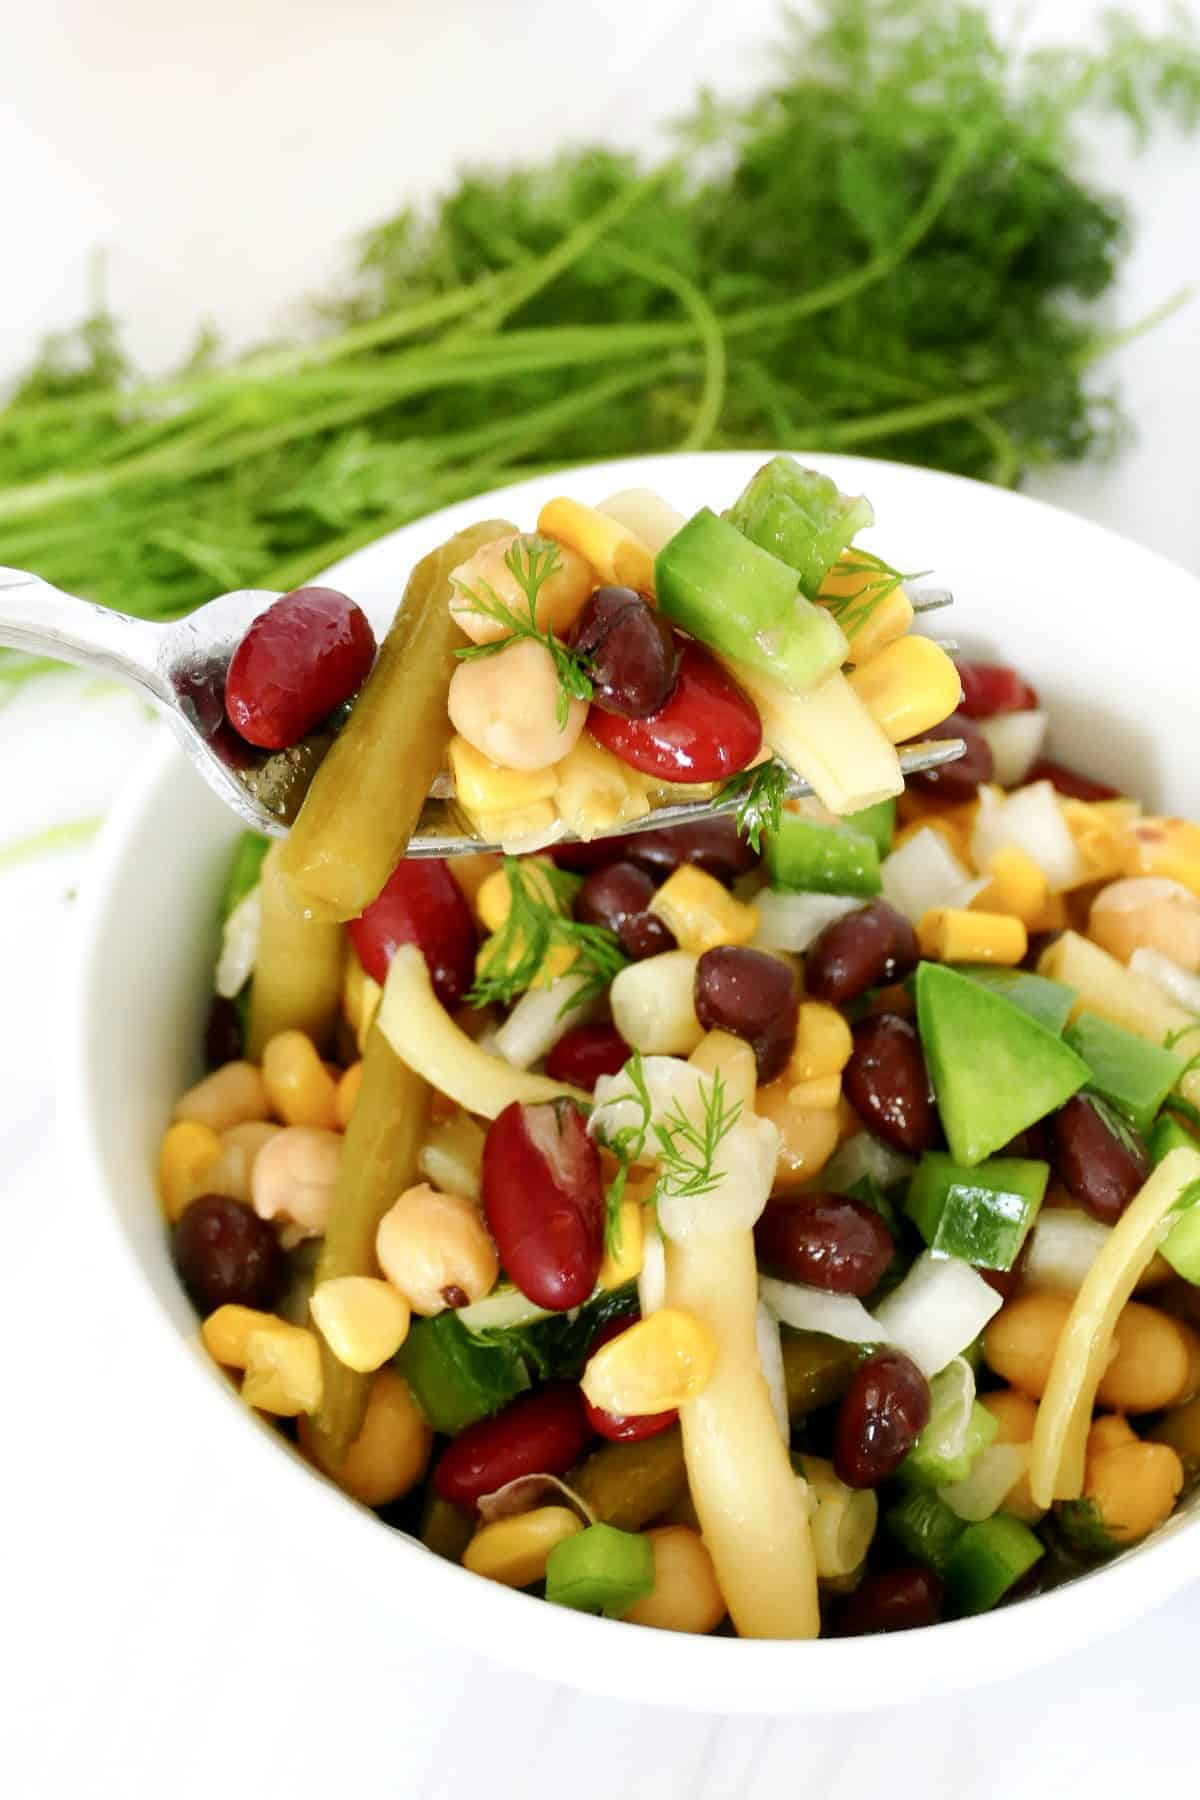 A forkful of bean salad is being help close to the camera lens.